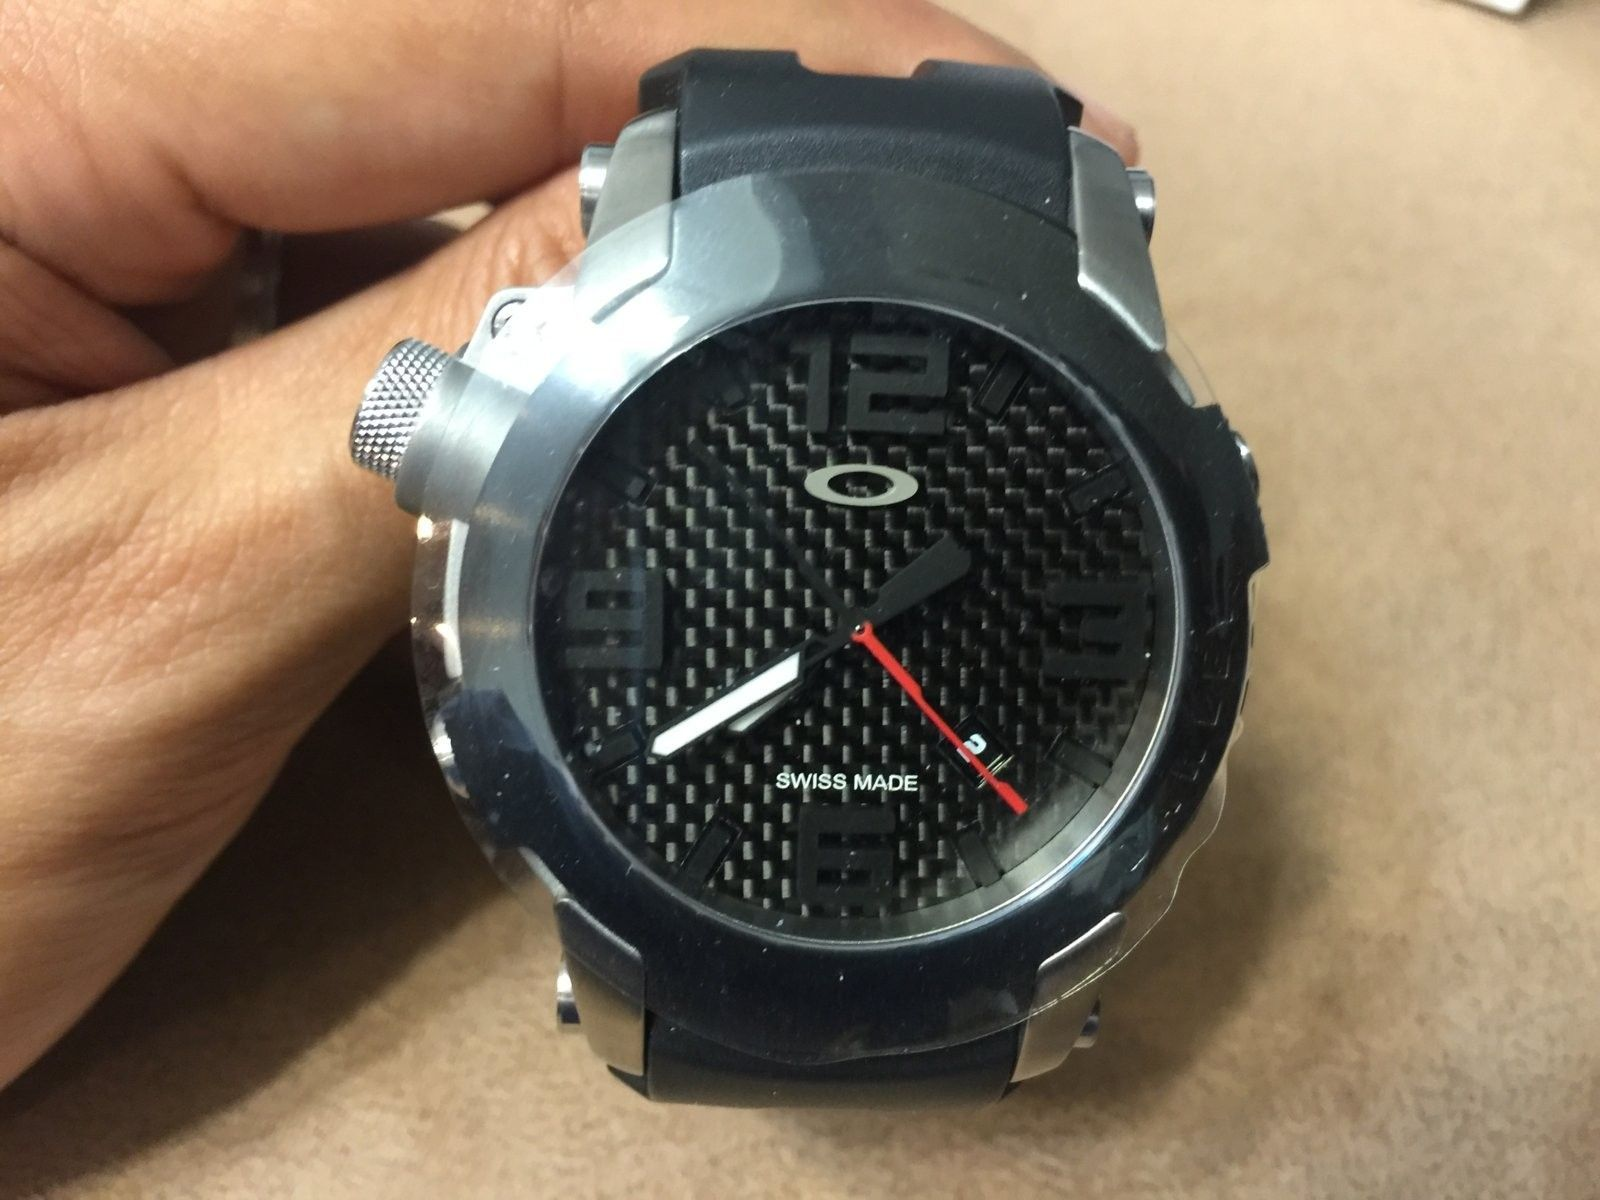 LNIB Titanium Killswitch ($450) and Stealth Bezel ($50) - IMG_7710.JPG